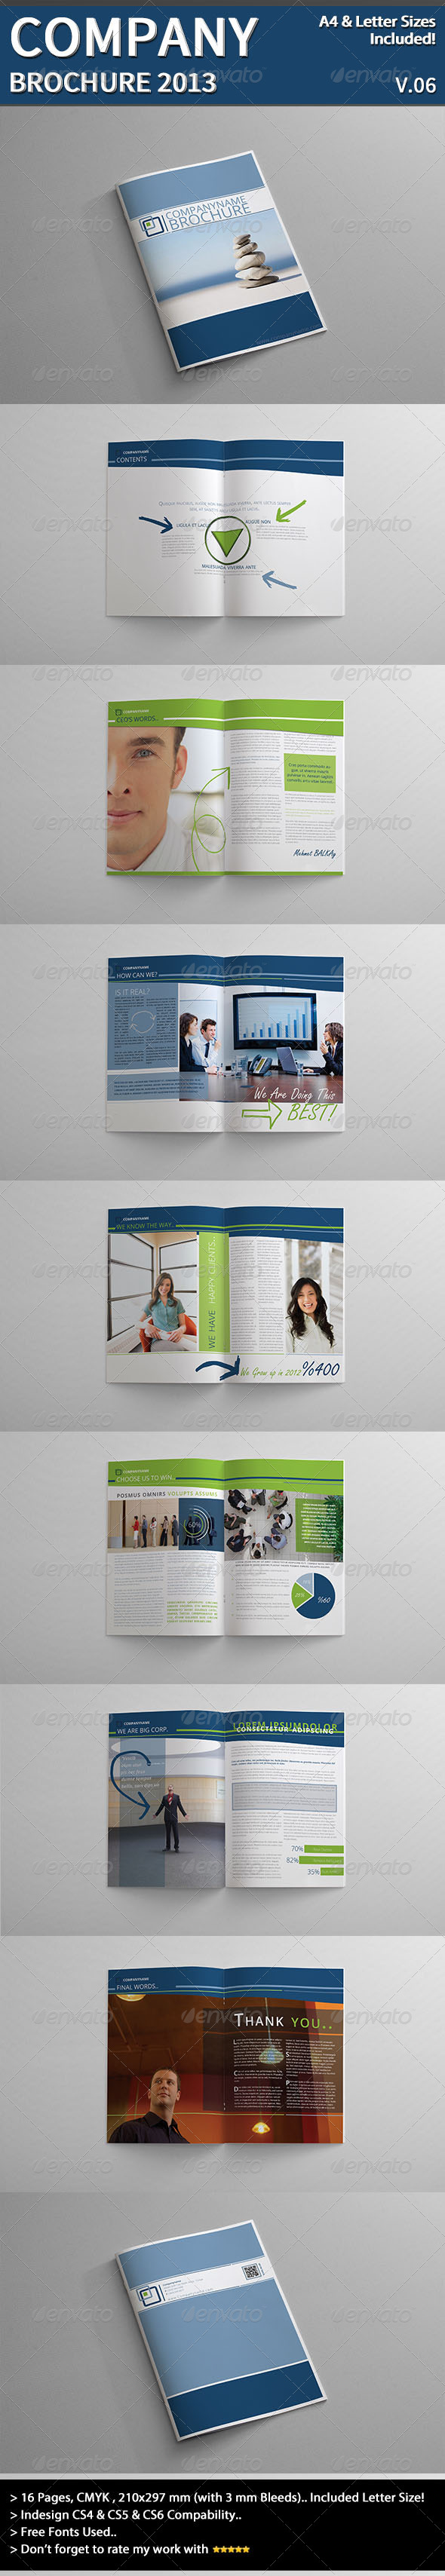 Company Brochure 2013 Part 06 - Corporate Brochures